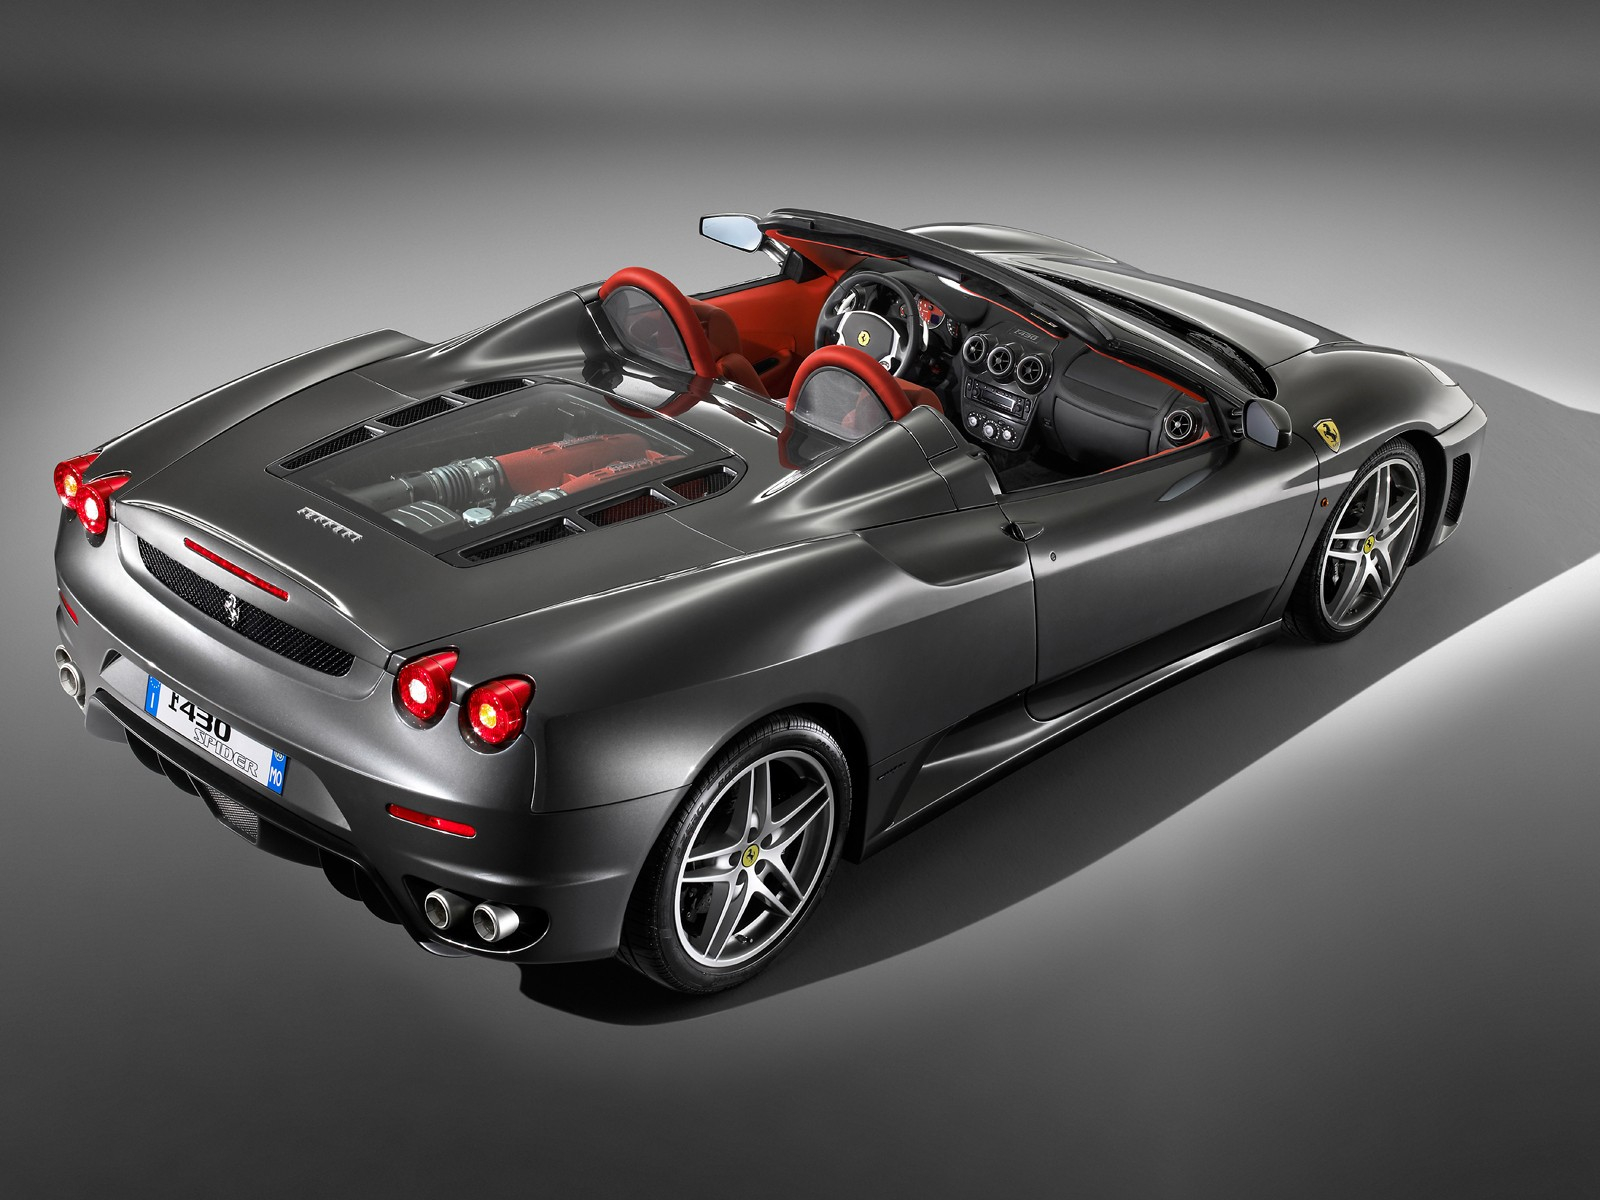 Ferrari f430 Spyder Wallpaper For Desktop